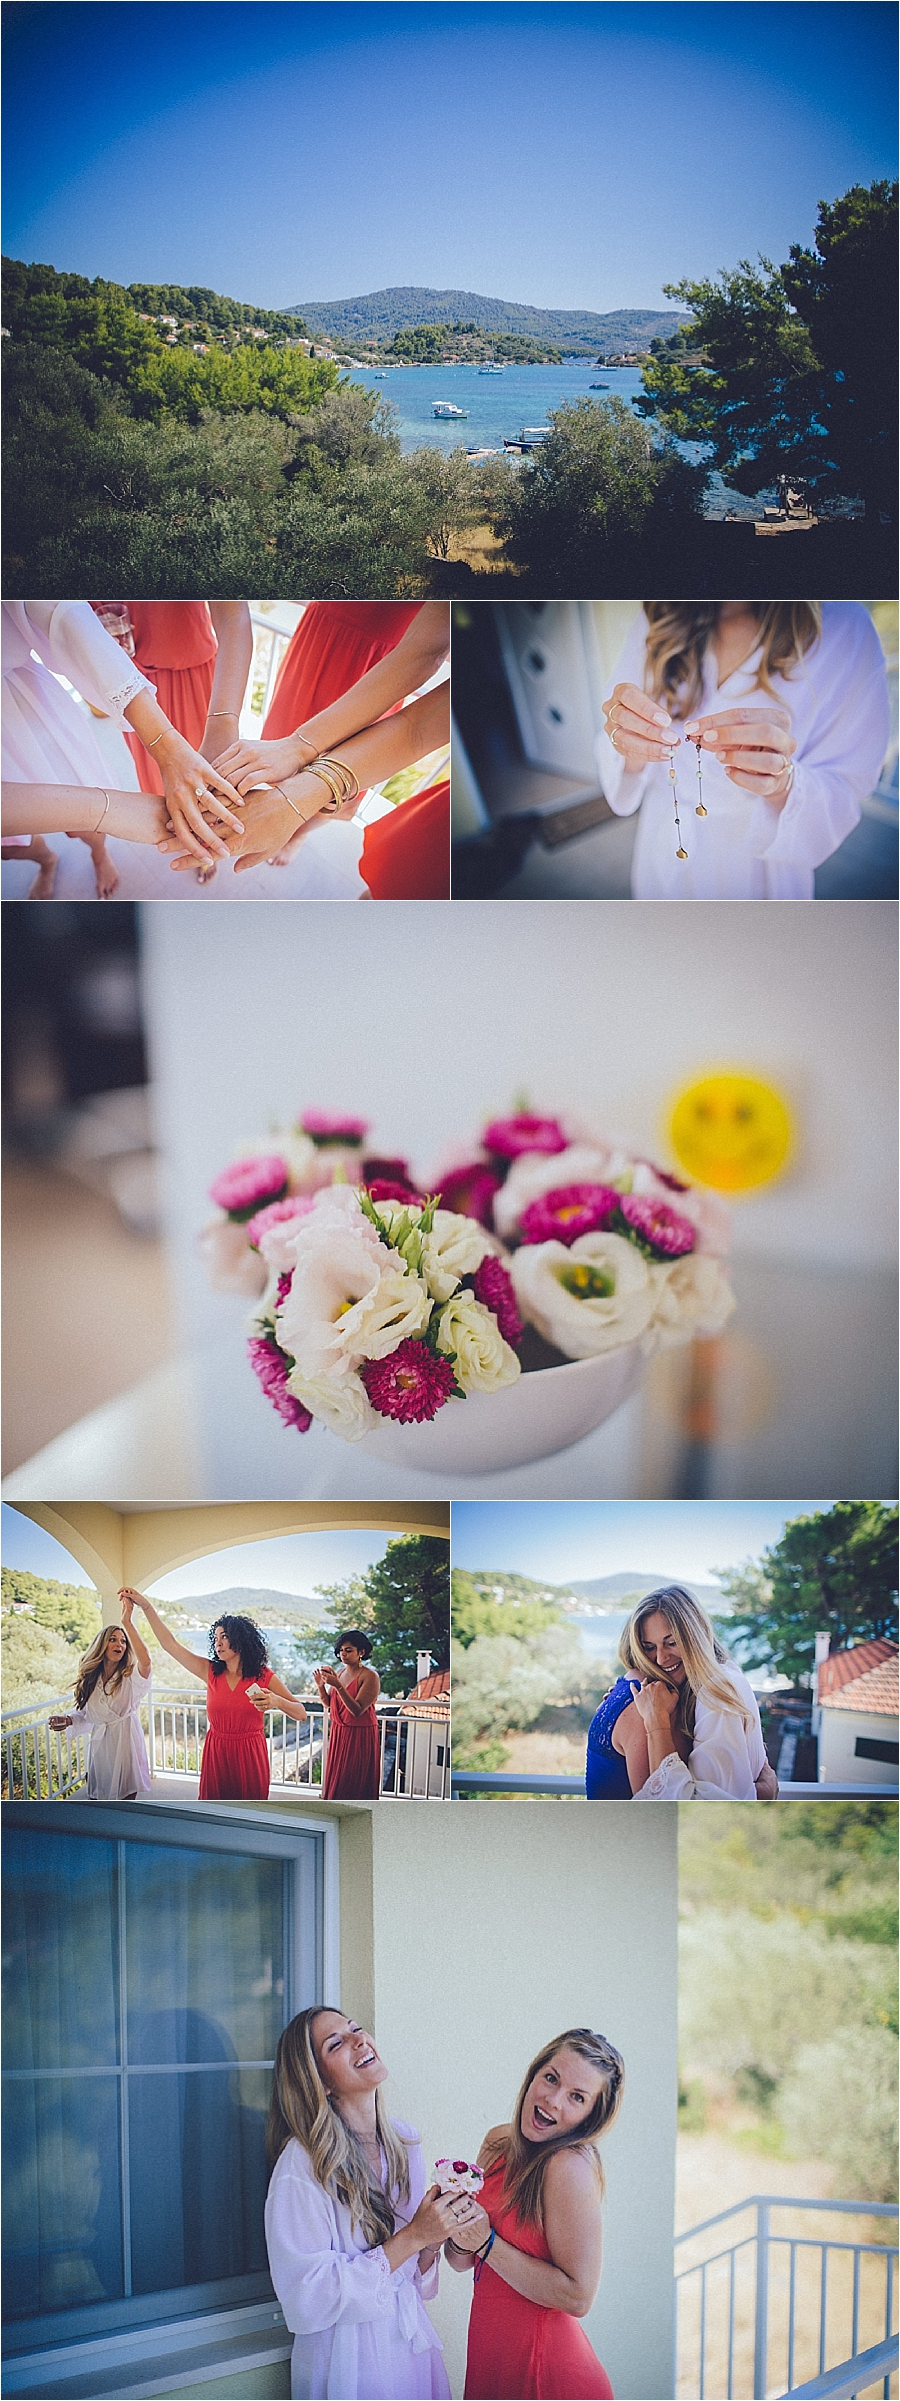 Sonja gets ready for her wedding in Croatia by Matija Kljunak Weddings